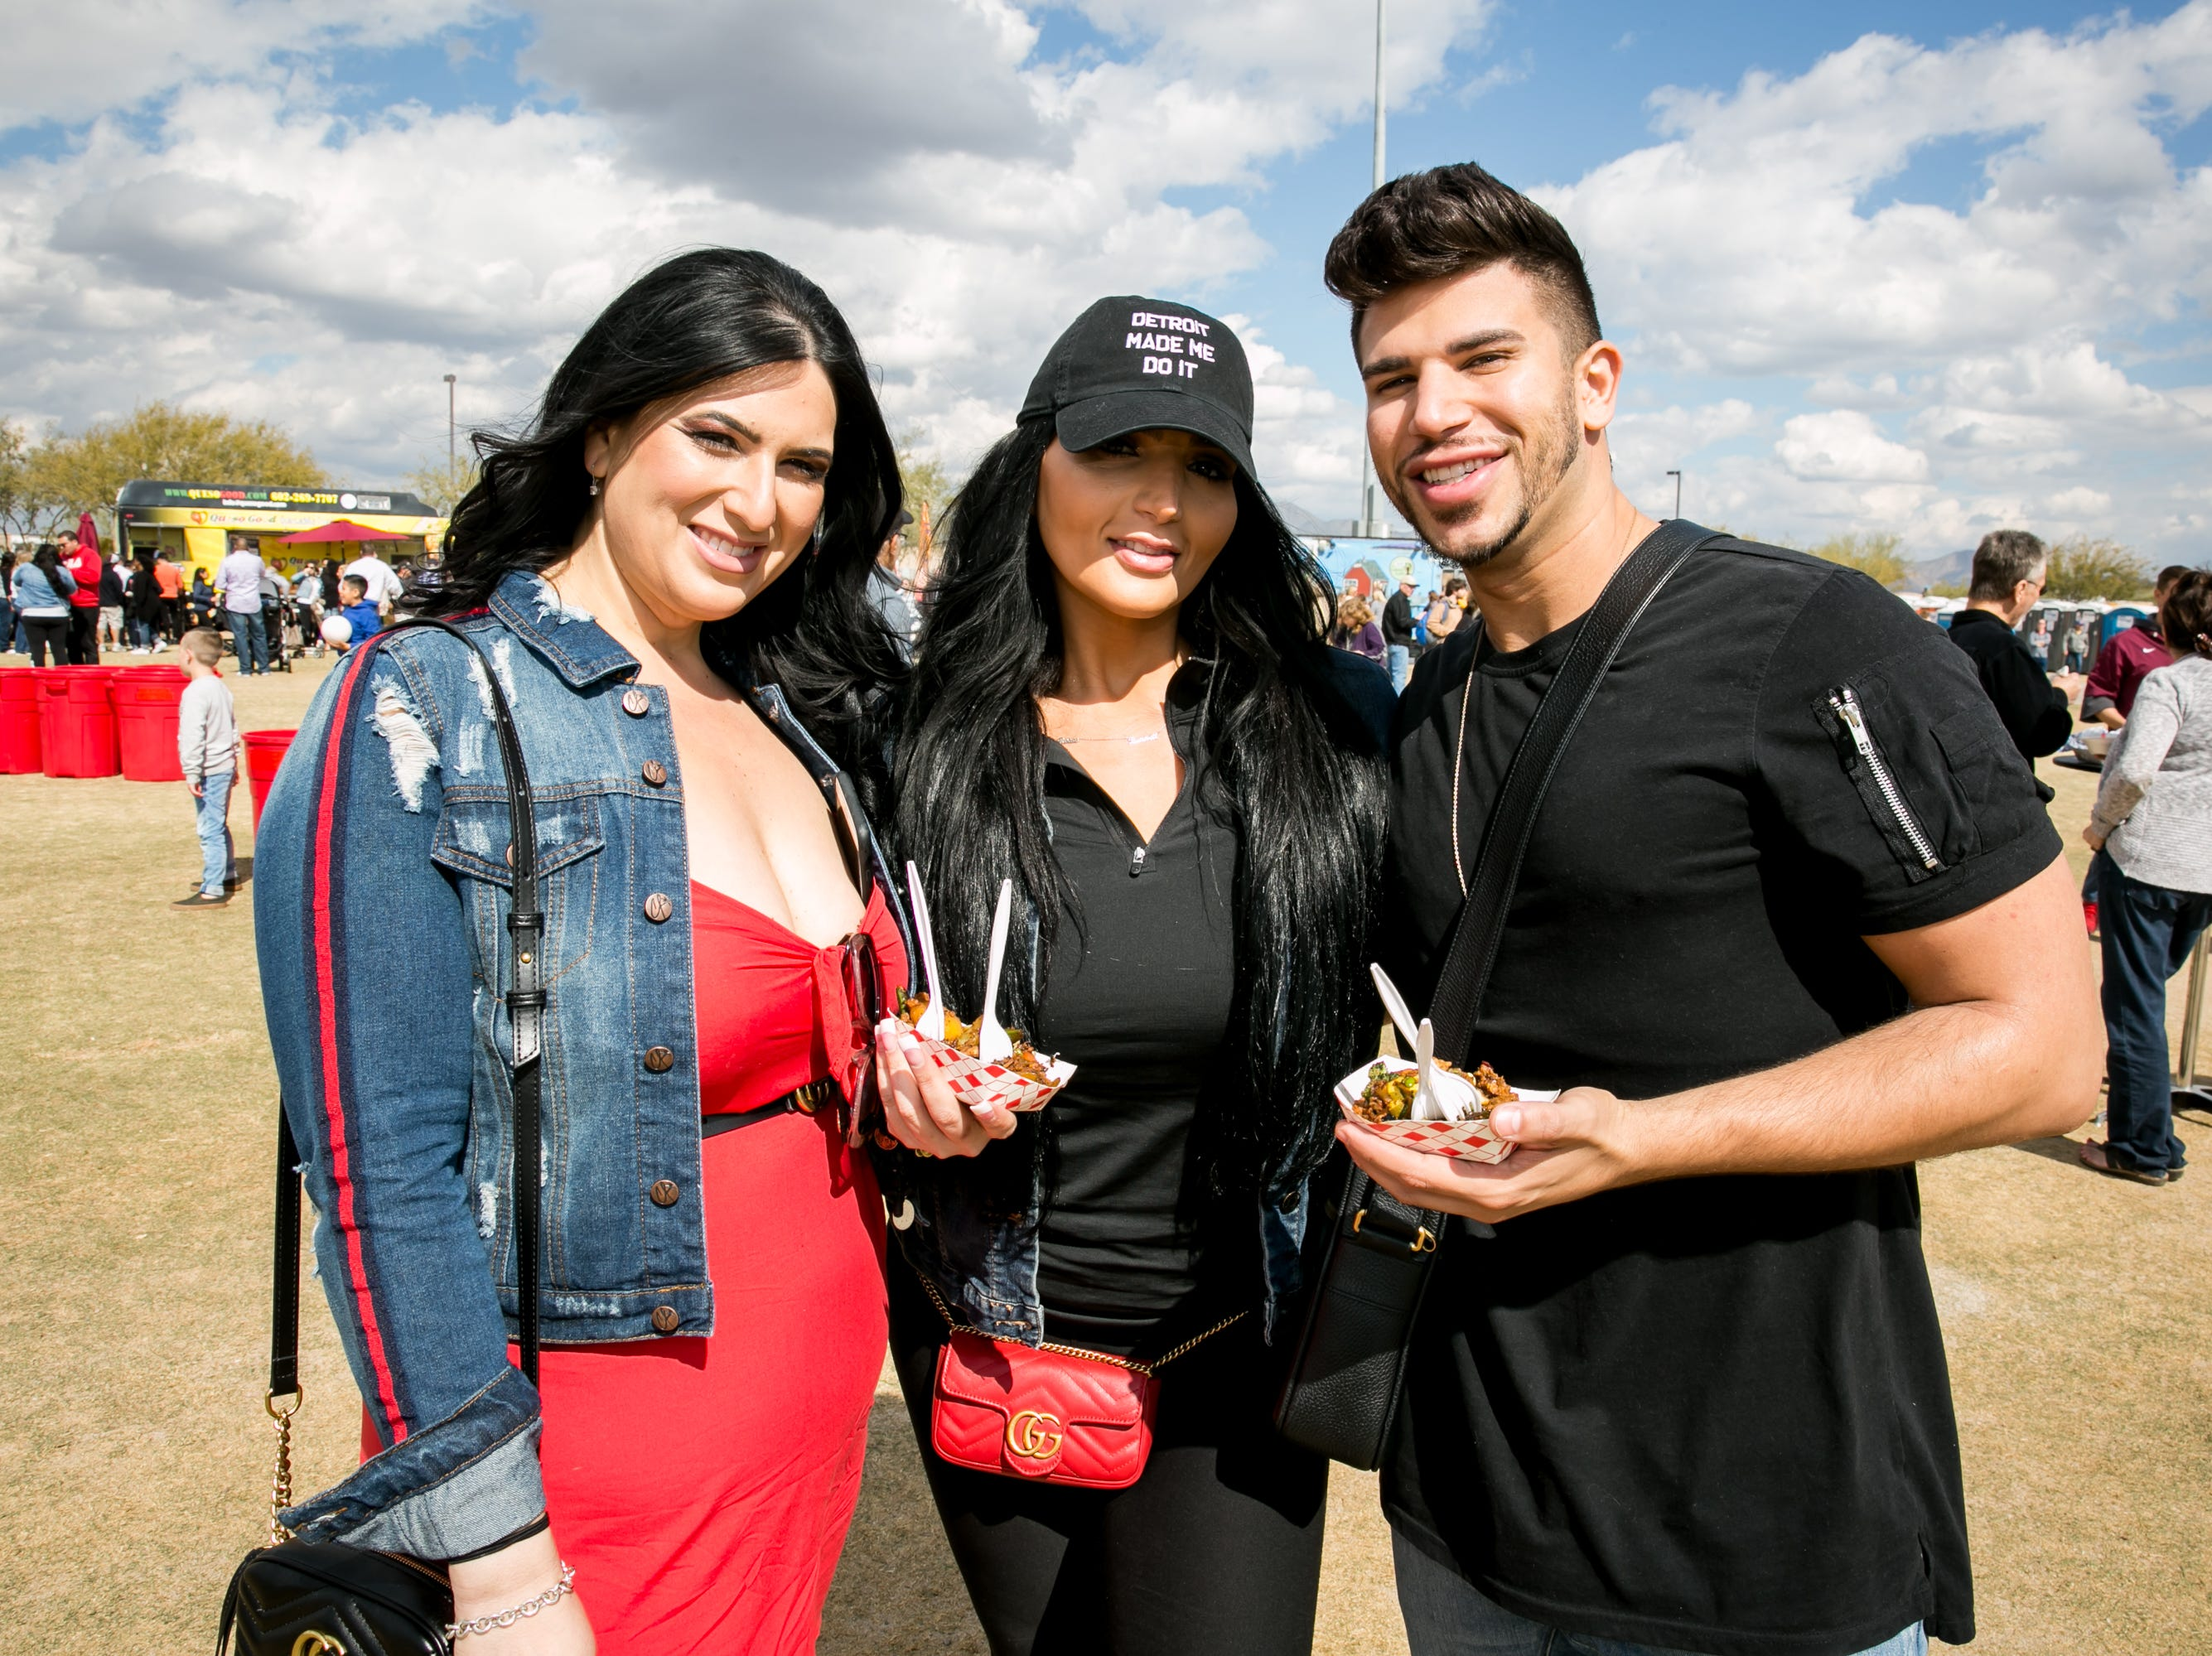 Detroit made this trio have a blast during the Street Eats Food Truck Festival at Salt River Fields near Scottsdale on Feb. 17, 2019.